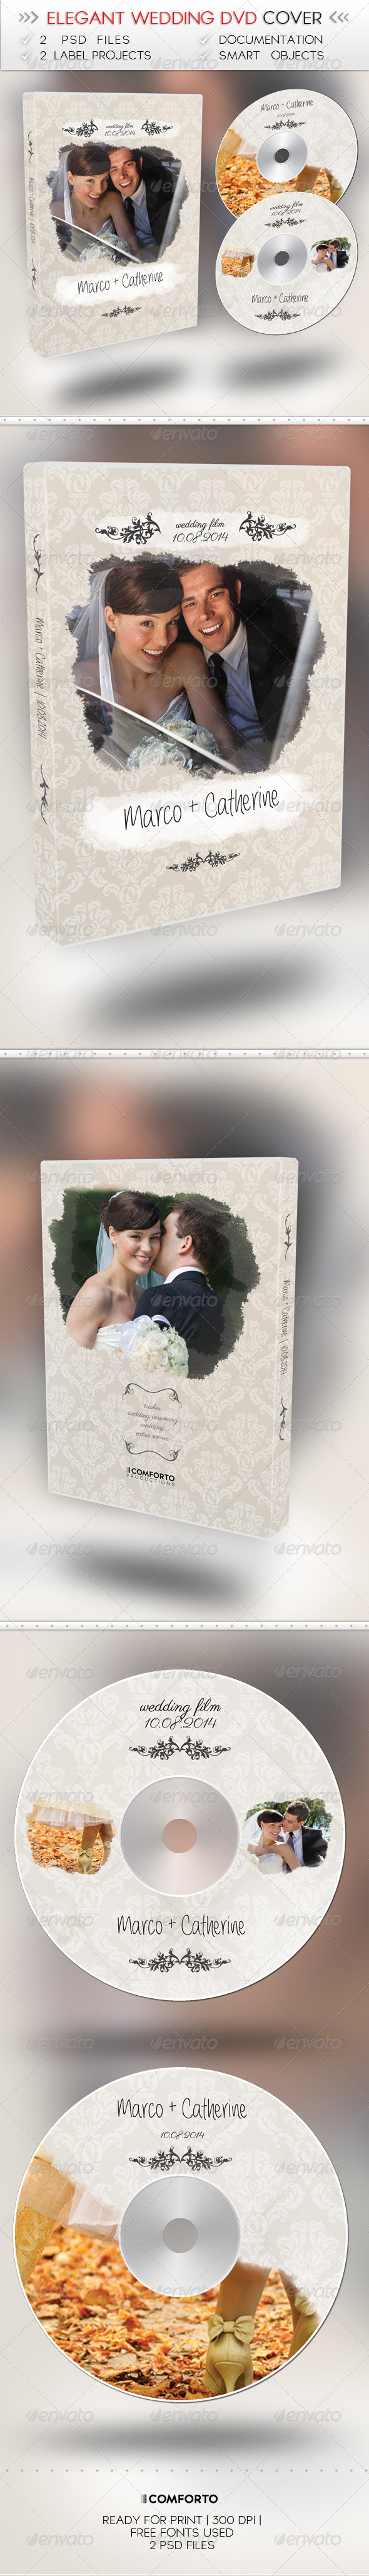 Elegant Wedding DVD Cover - CD & DVD Artwork Print Templates